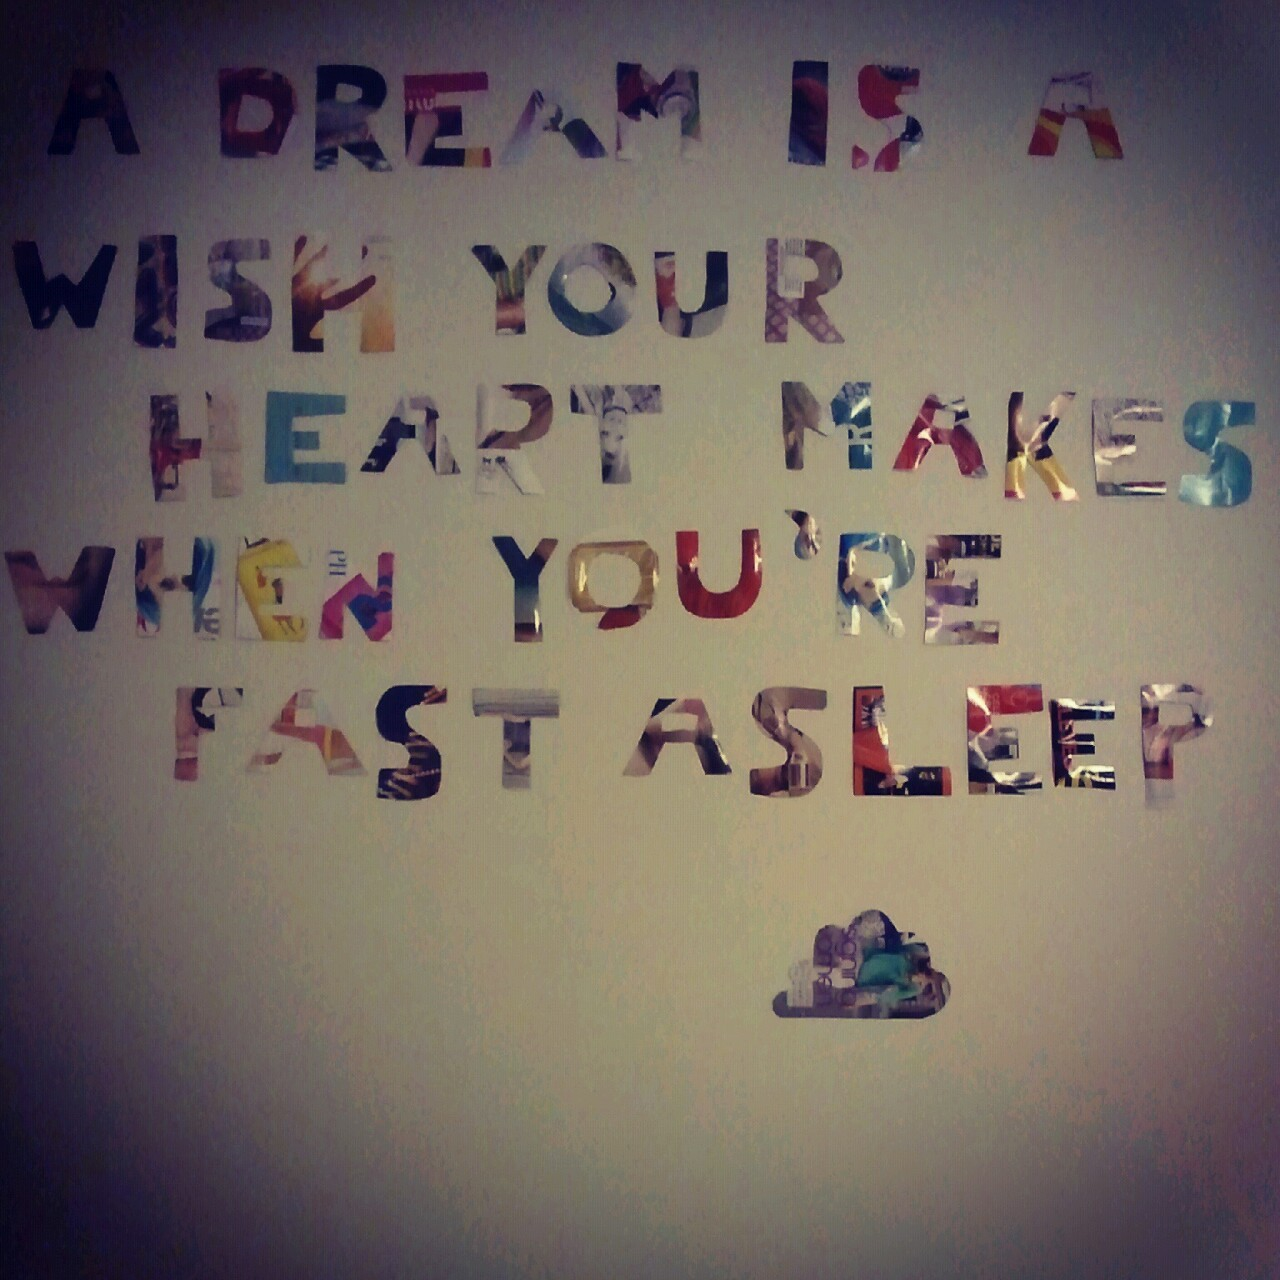 a dream is a wish your heart makes when youre fast asleep.